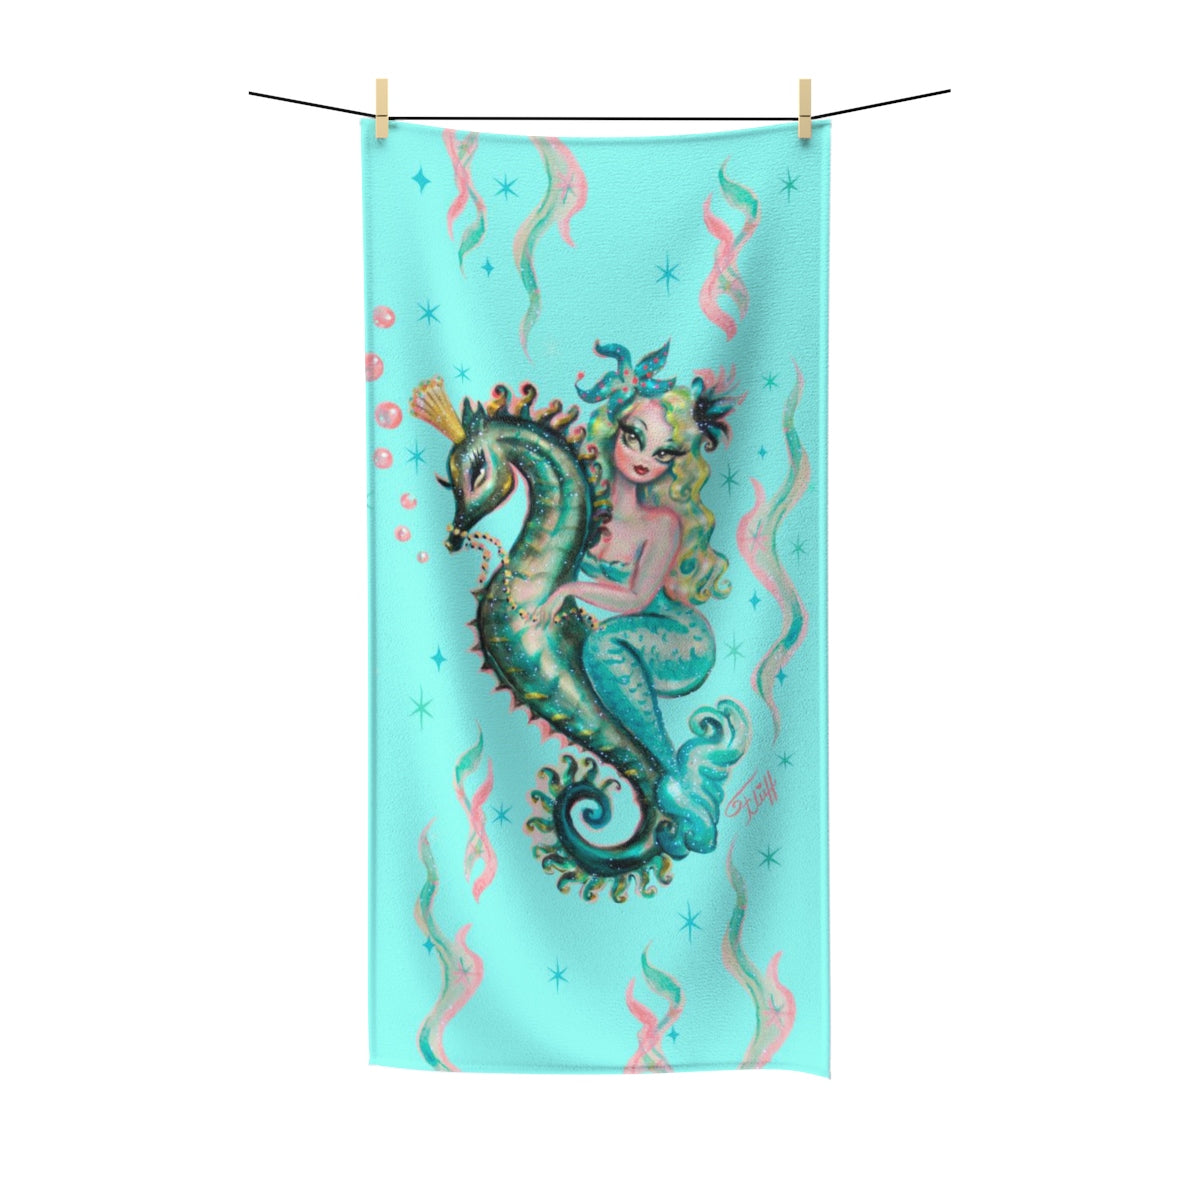 Blue Mermaid Riding a Seahorse Prince Aqua • Towel